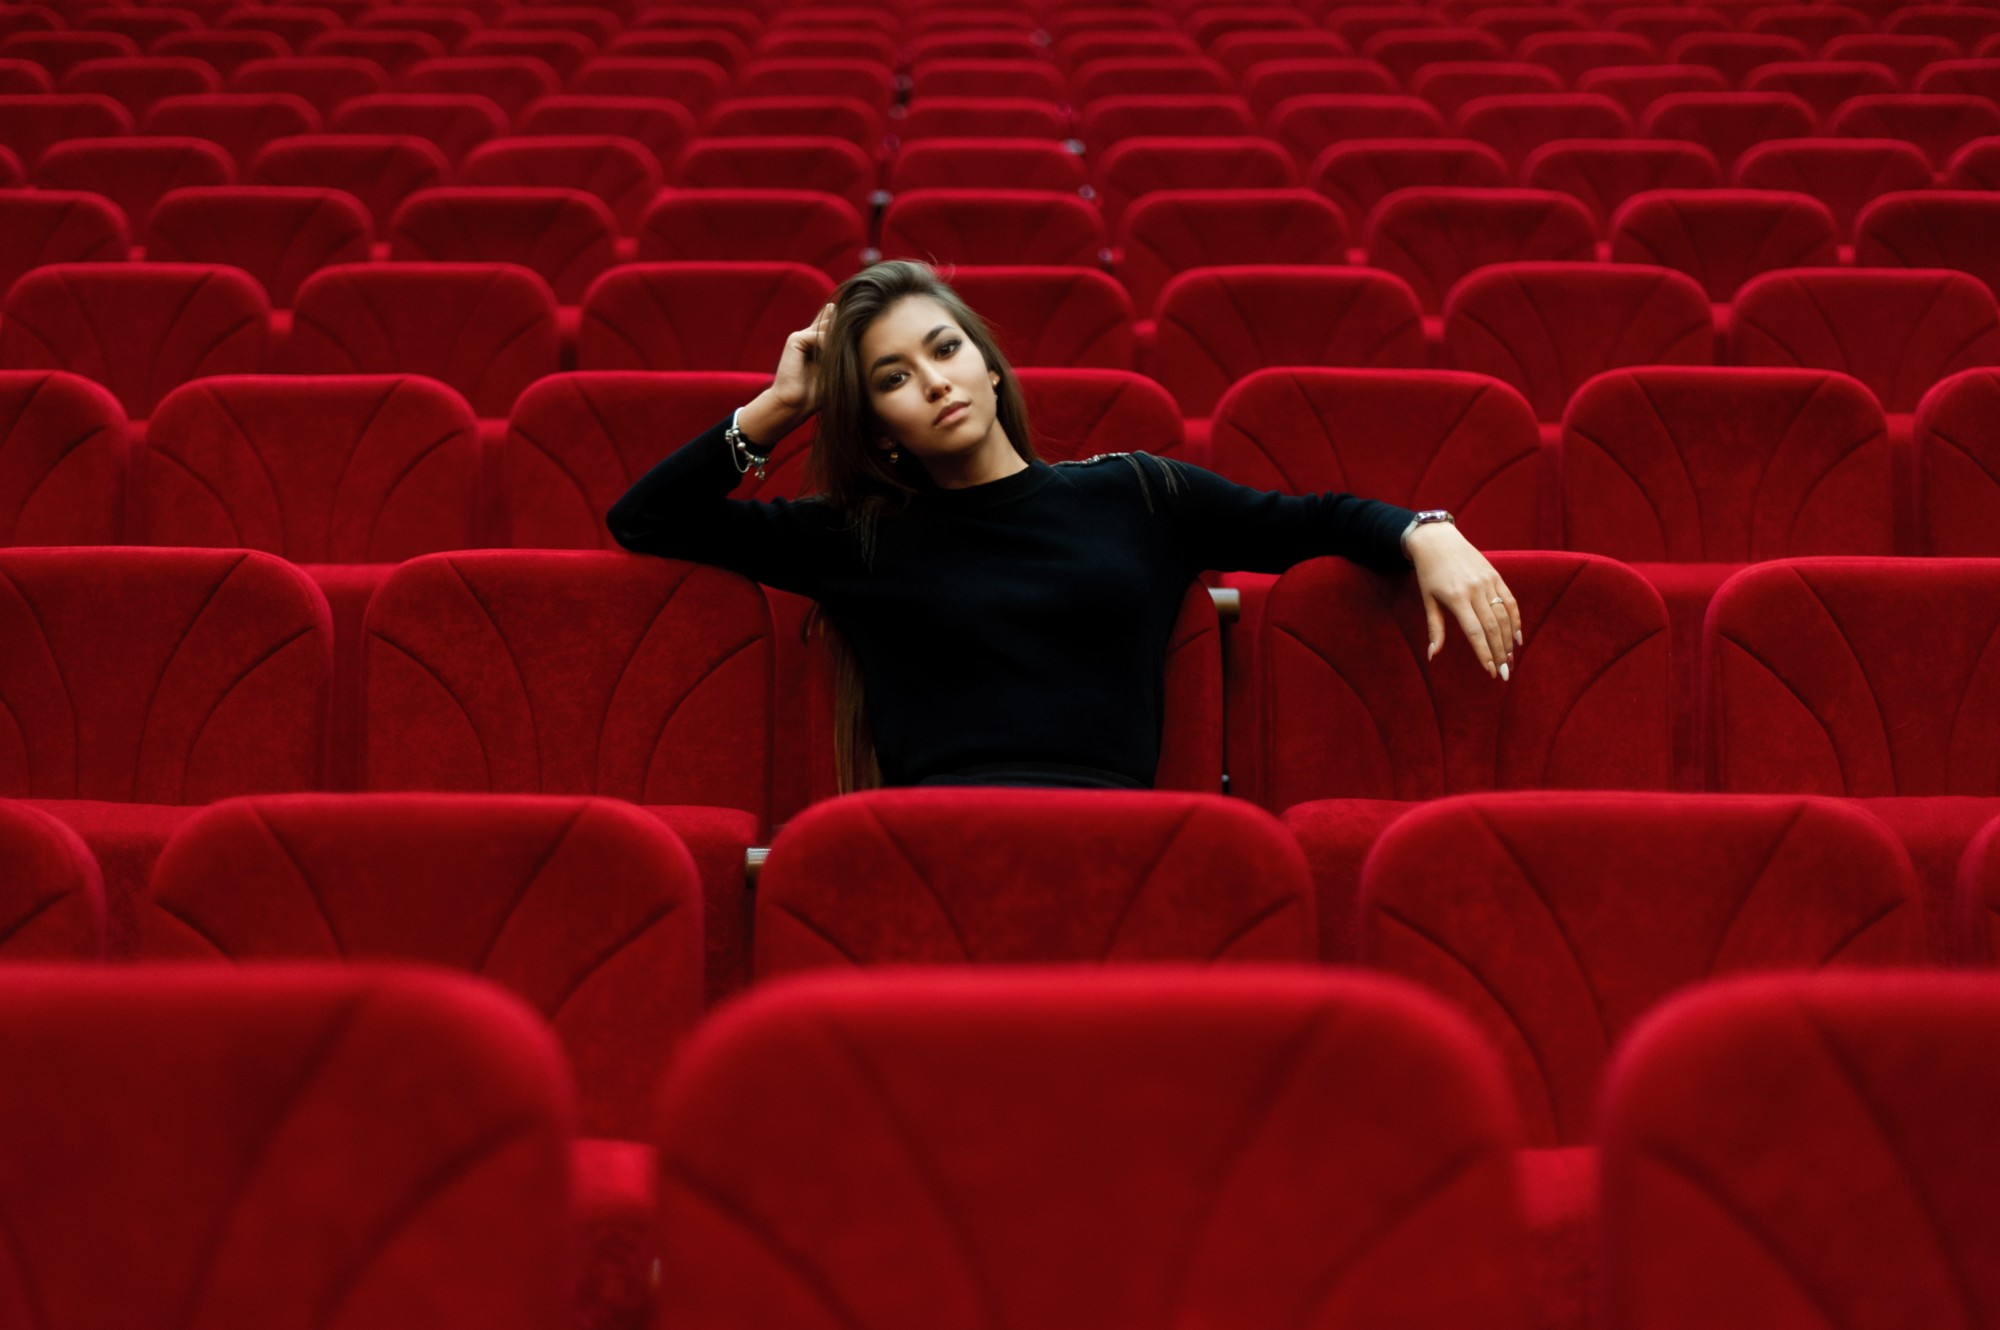 A lone woman sitting in a movie theater waiting to be intrigued